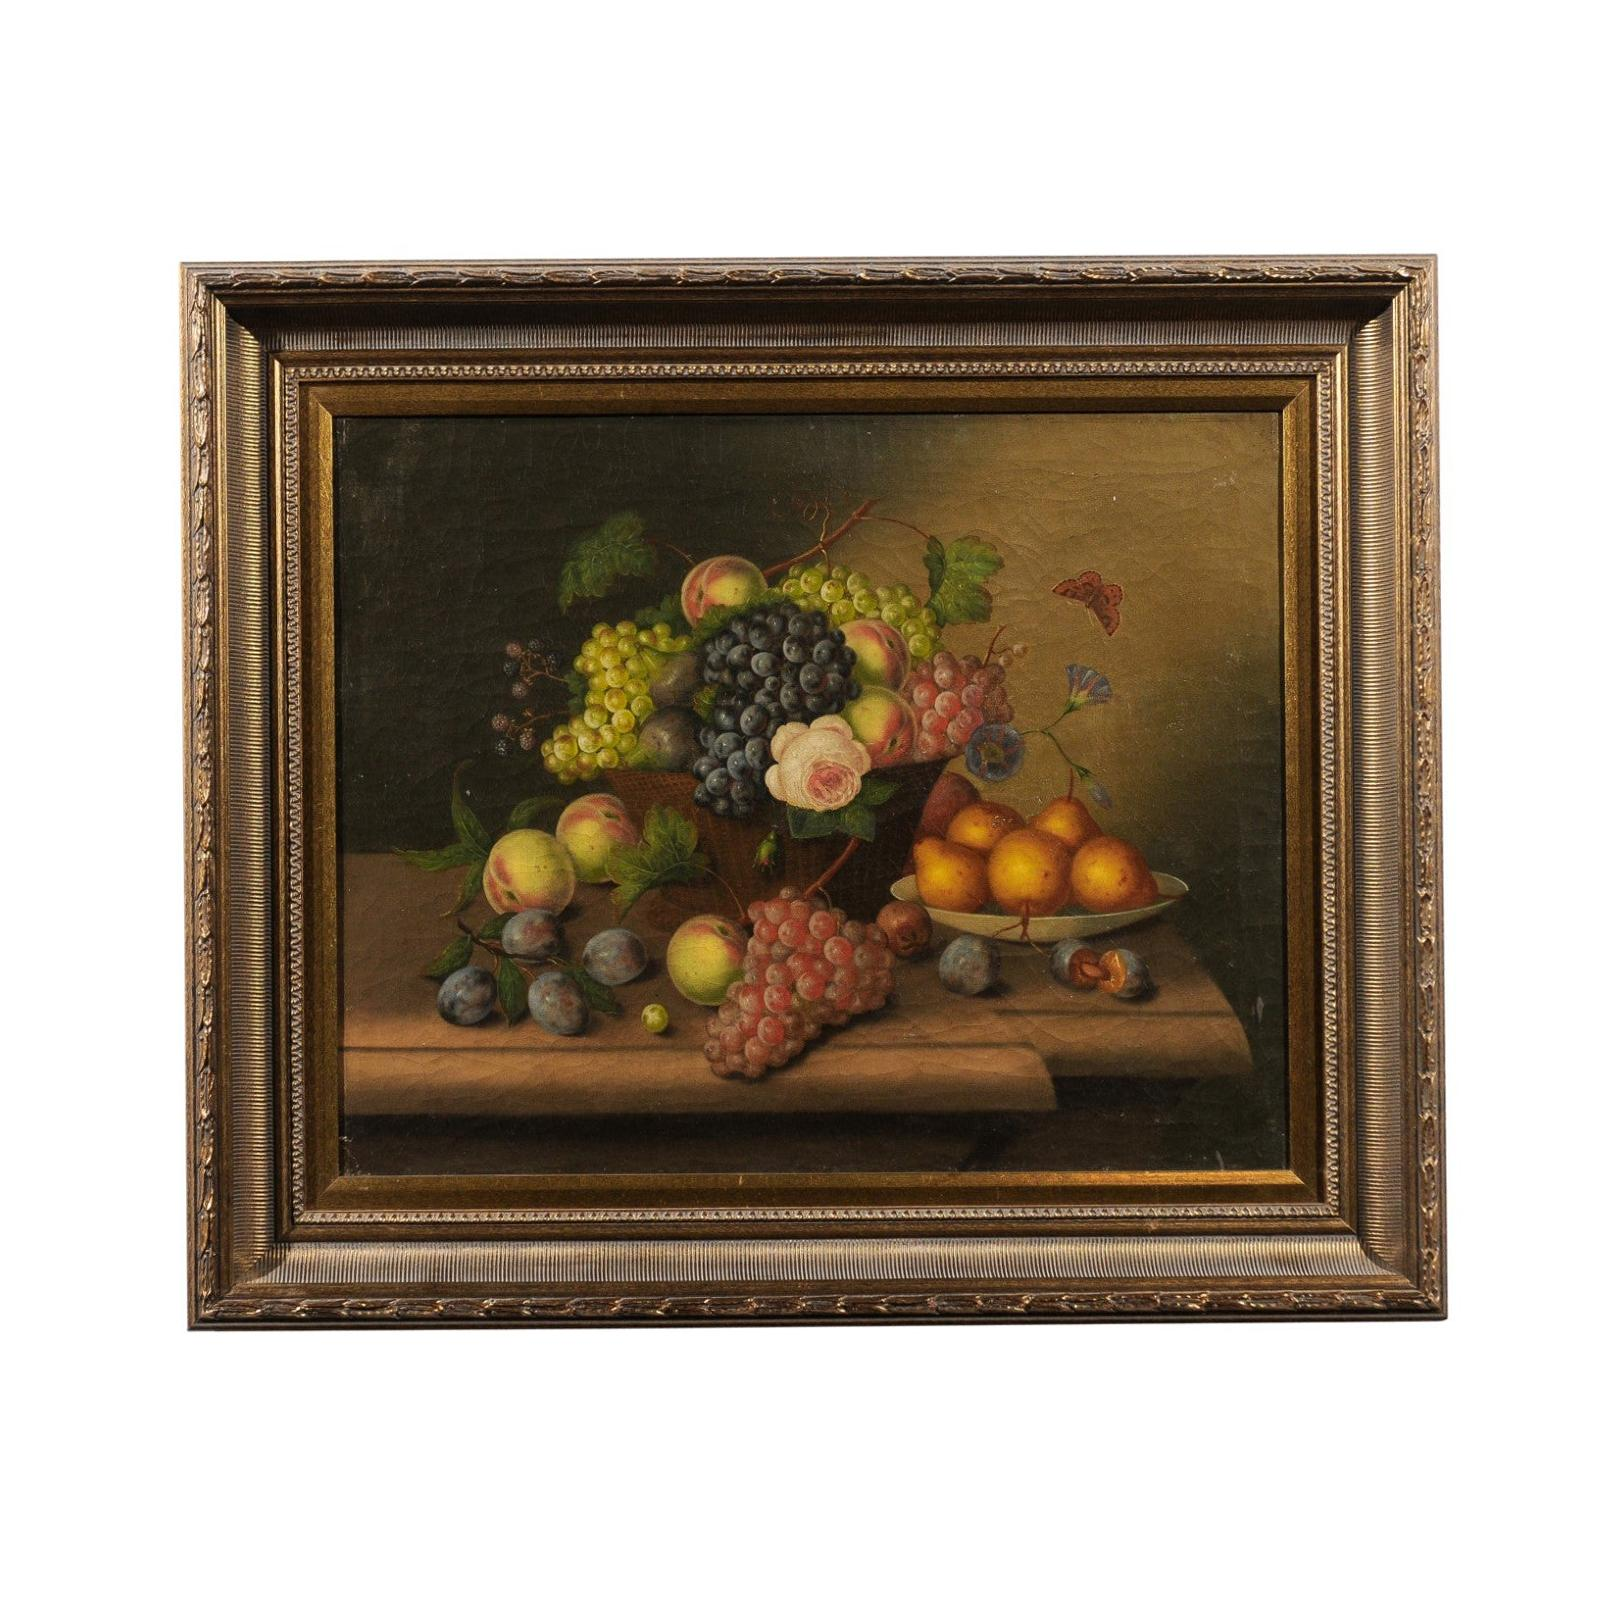 French 19th Century Framed Oil on Canvas Still-Life Painting Depicting Fruits